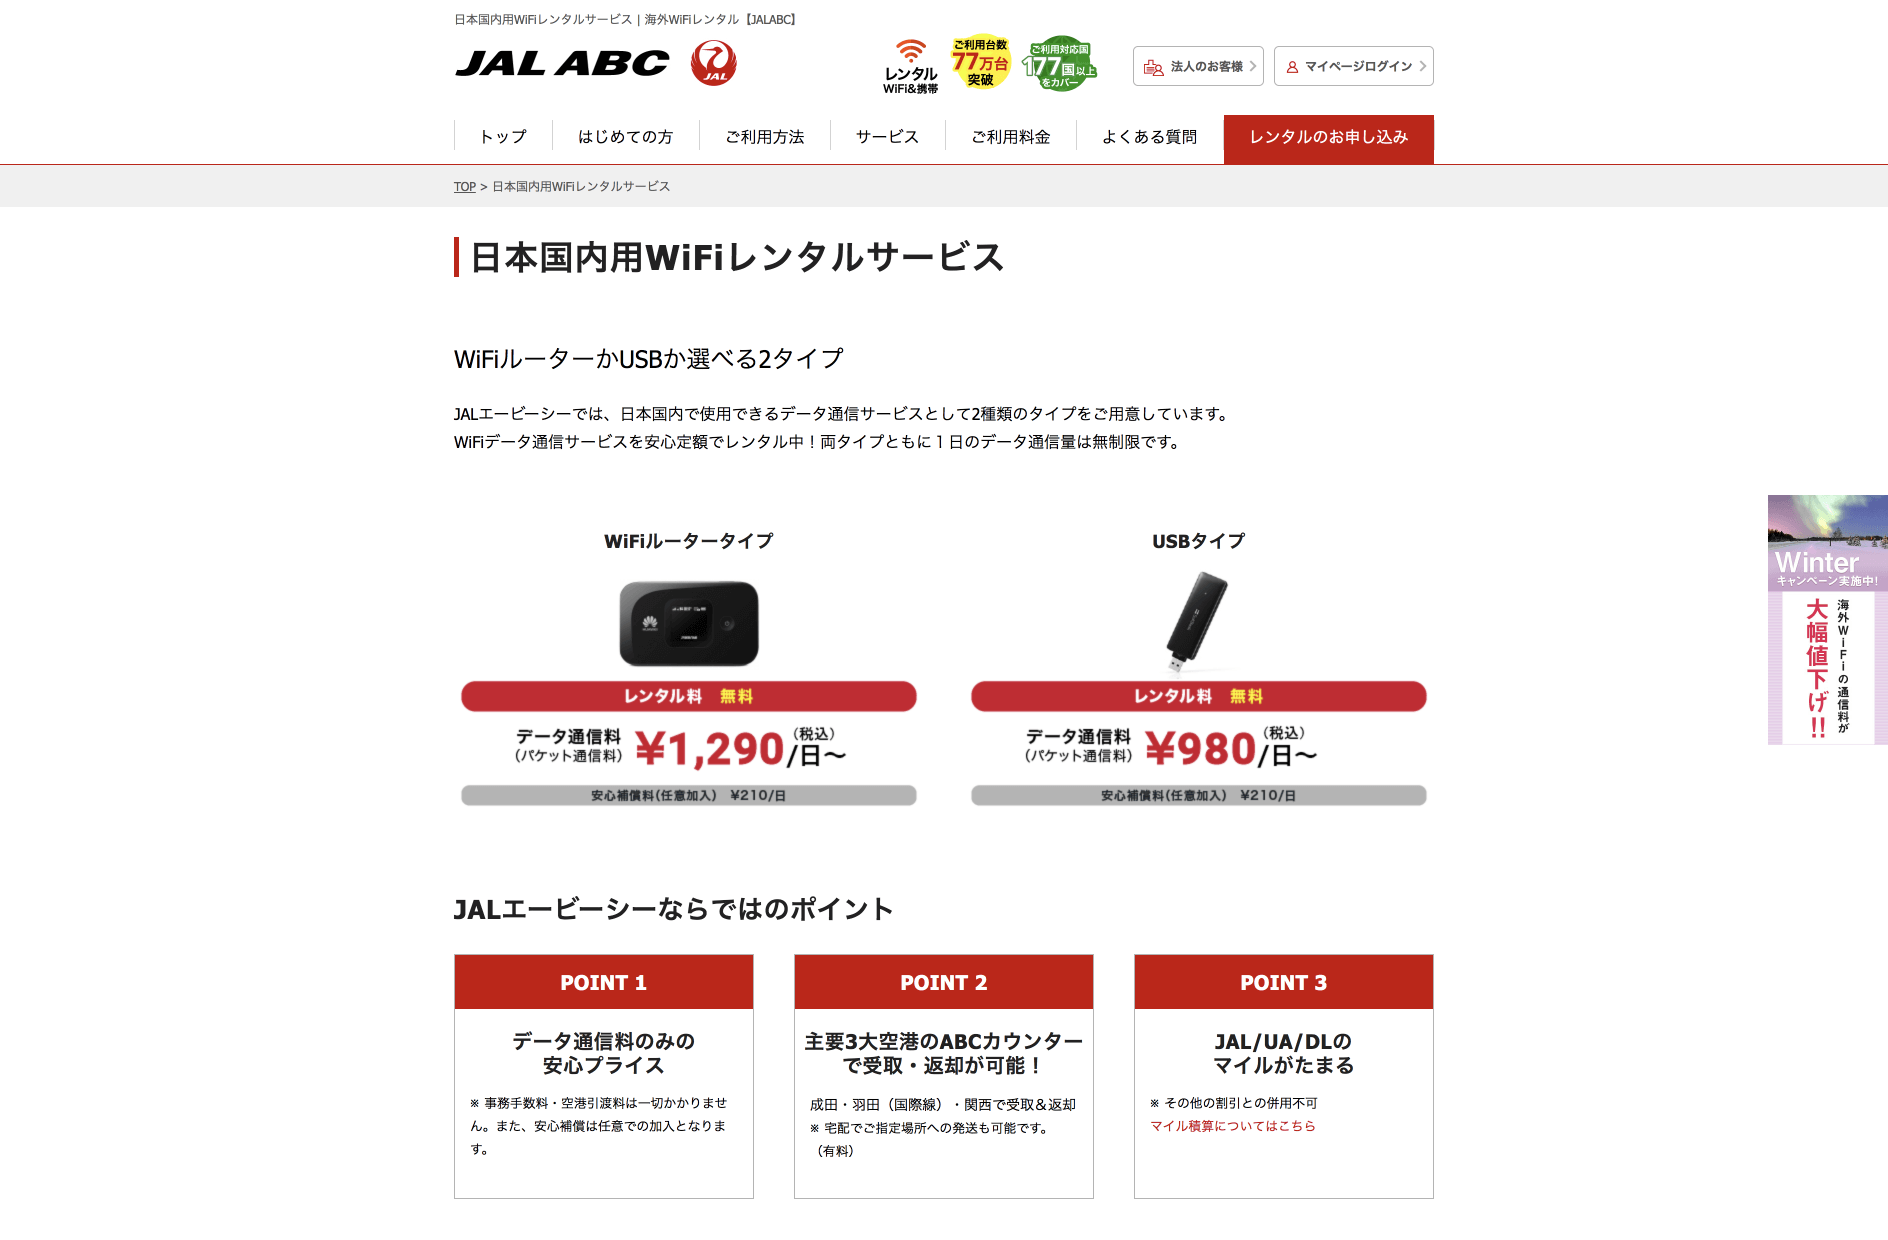 JAL ABC Japanese website